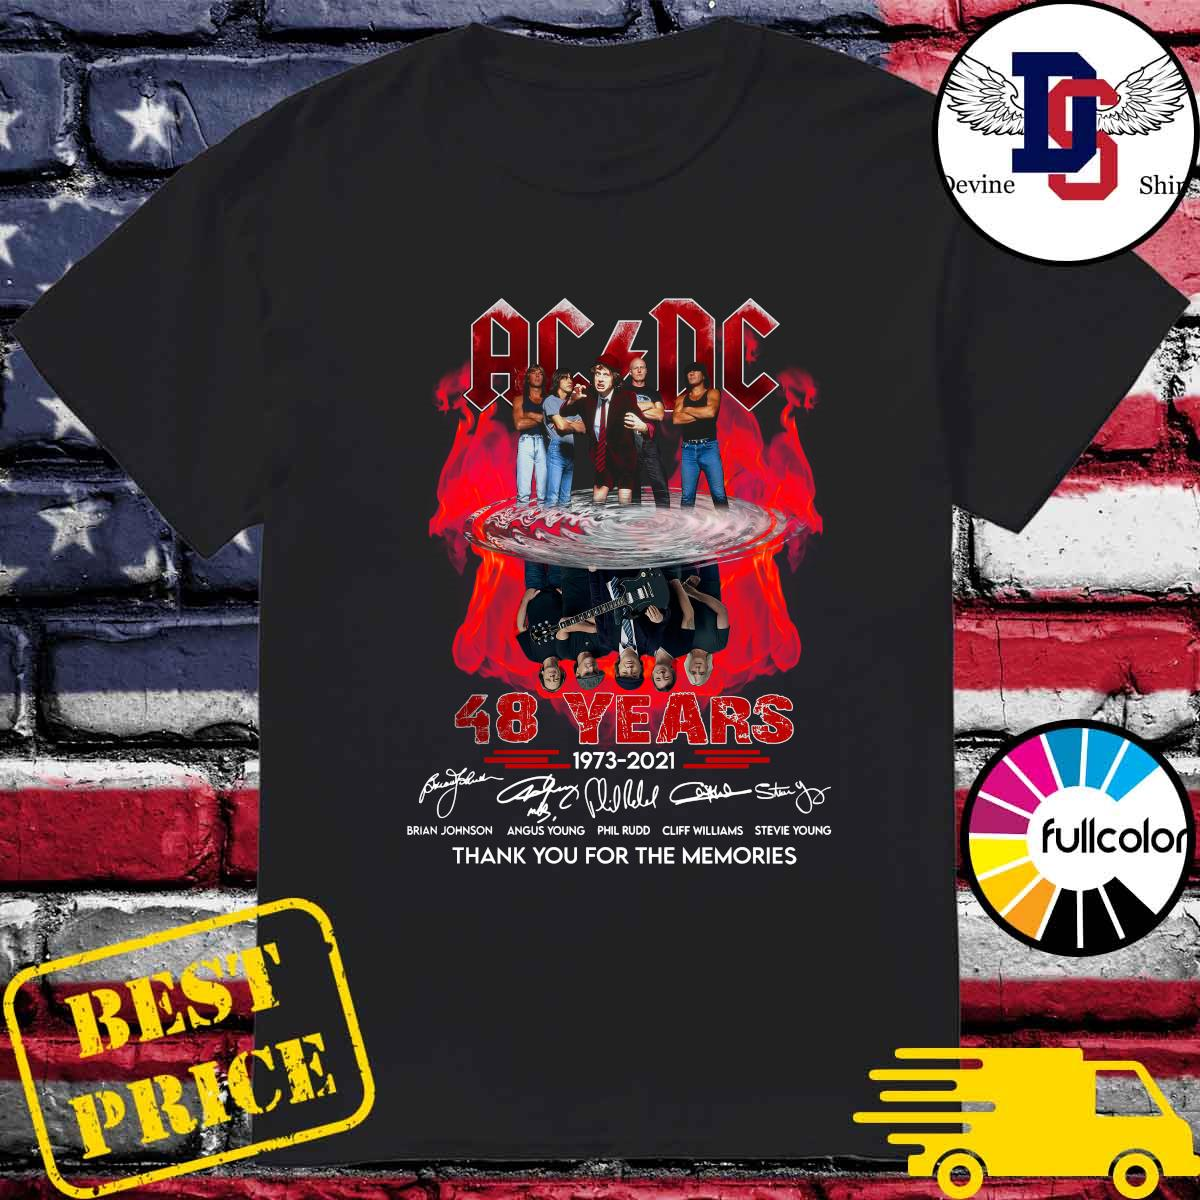 Official Thank You For The Memories Of The Ad Dc Band With 48 Years 1973 2021 Signatures Shirt